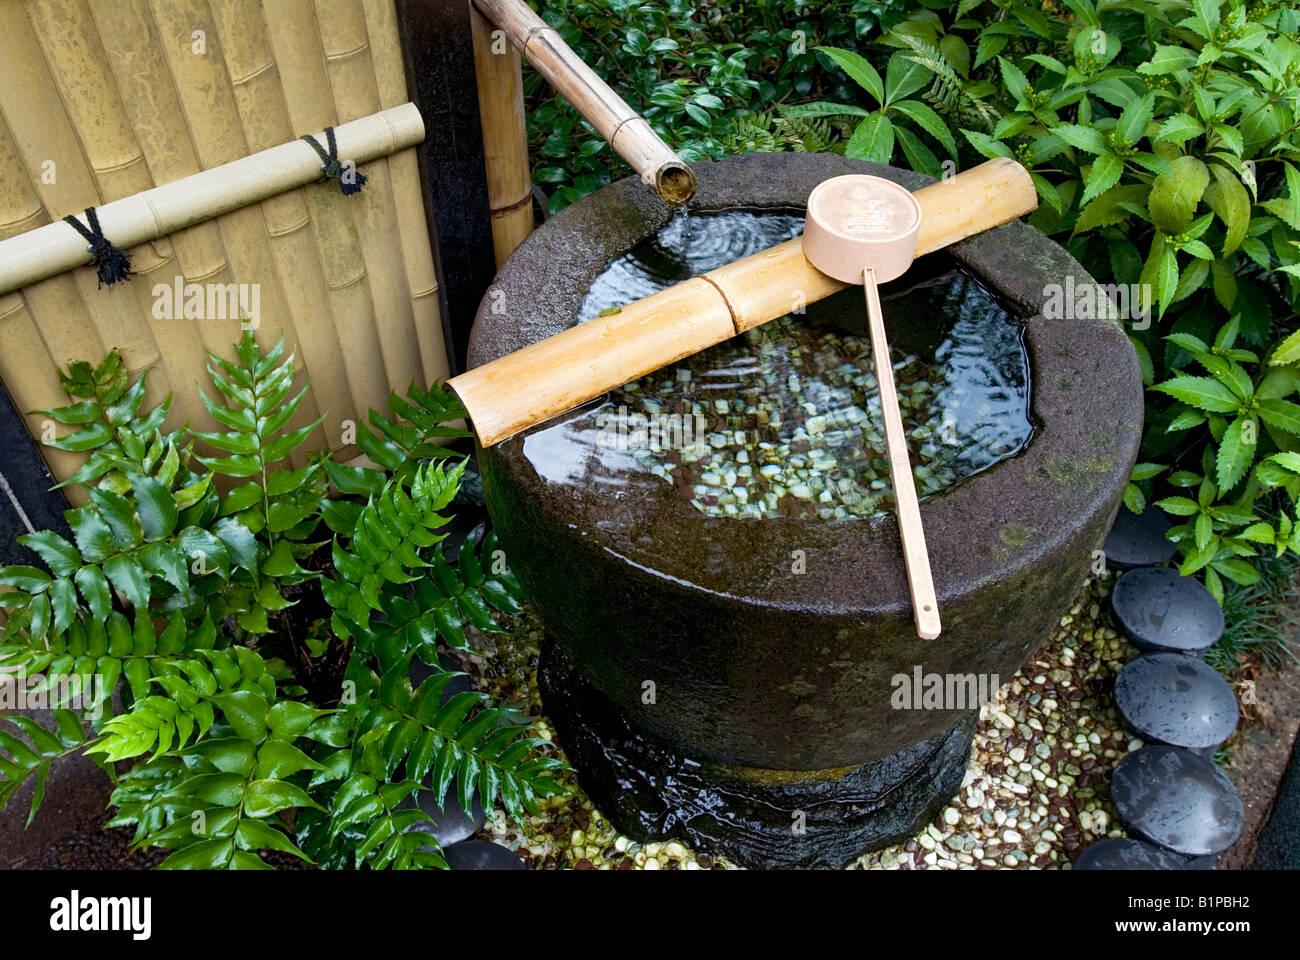 A Tsukubai, Or Stone Basin, In Lush Japanese Garden Filled With Water Has A